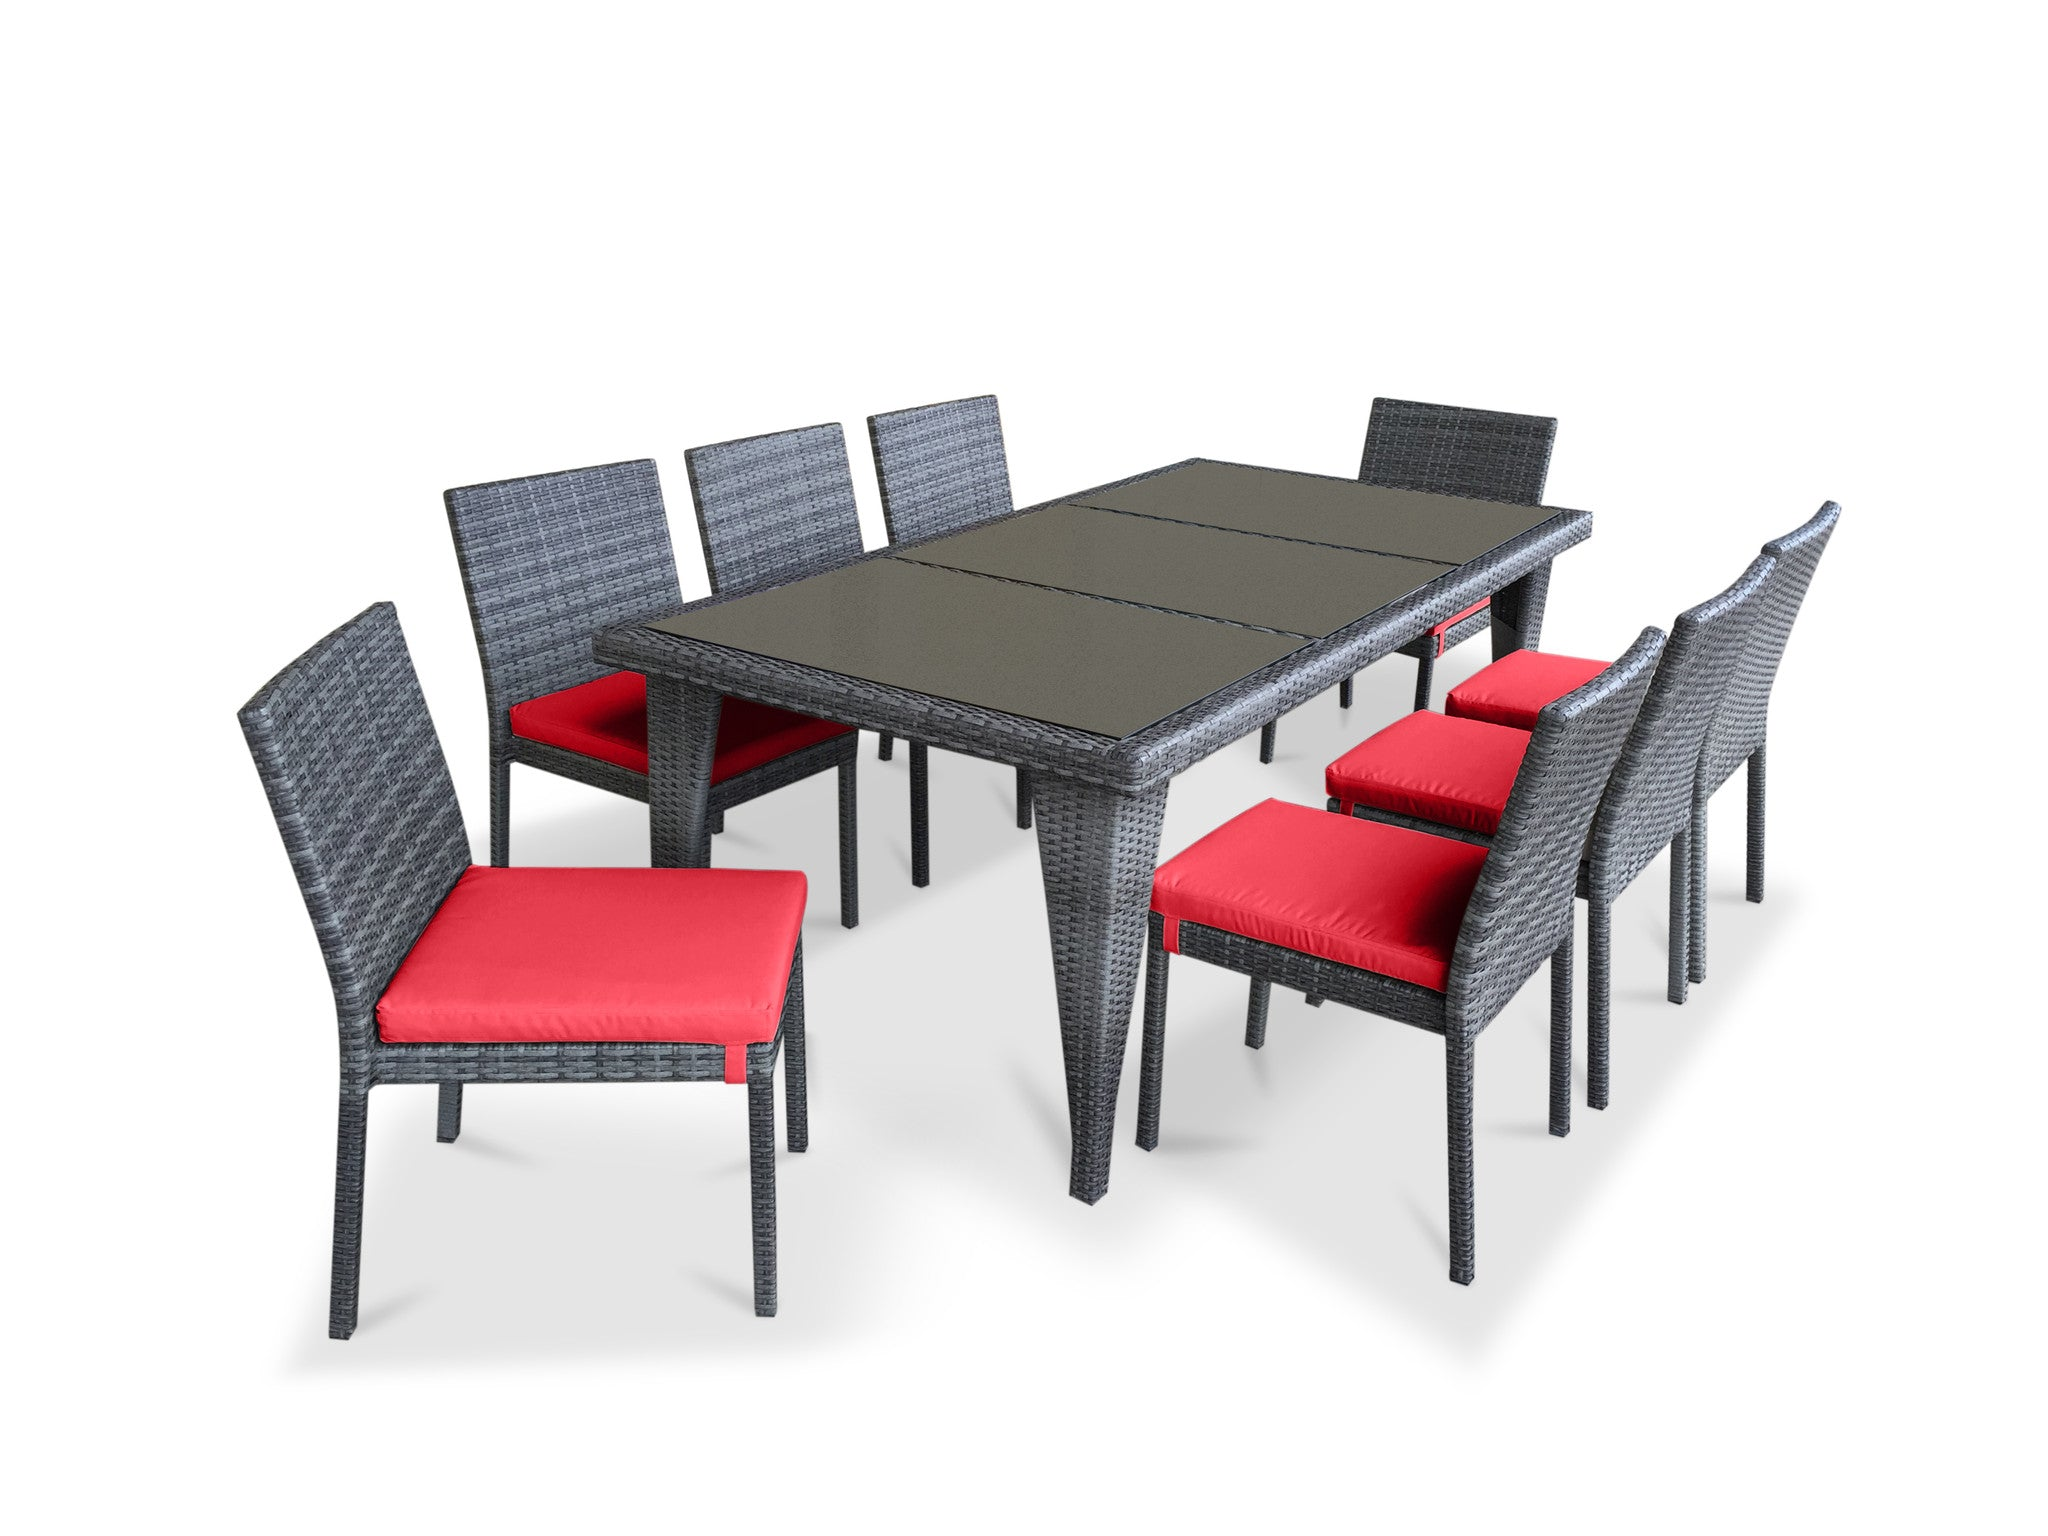 9 Piece Wicker Outdoor Patio Dining Set   Gray Wicker / Coral Red